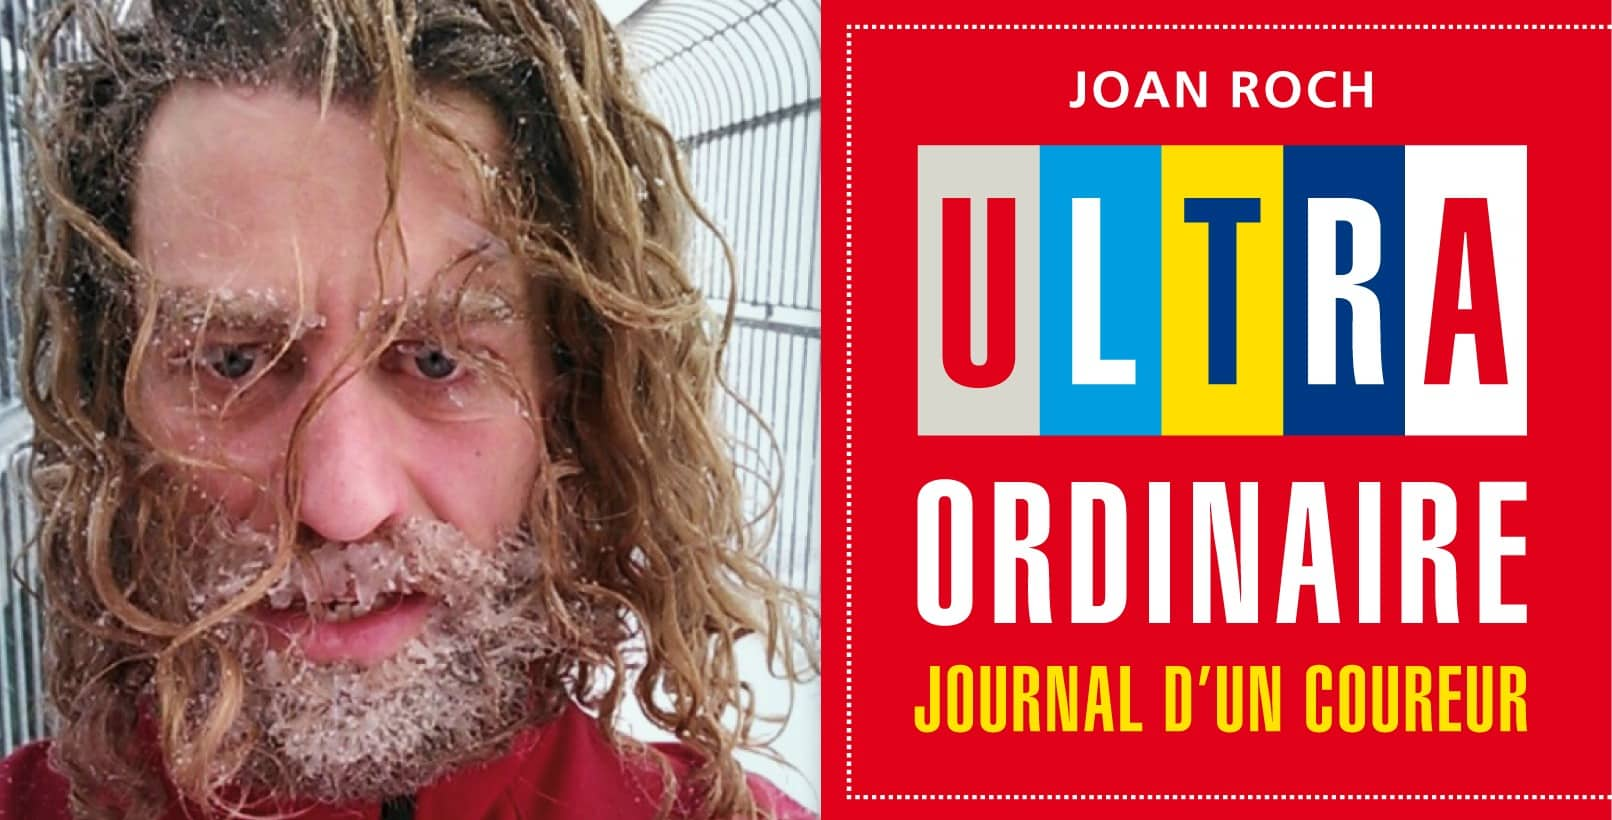 Joan Roch ultra ordinaire